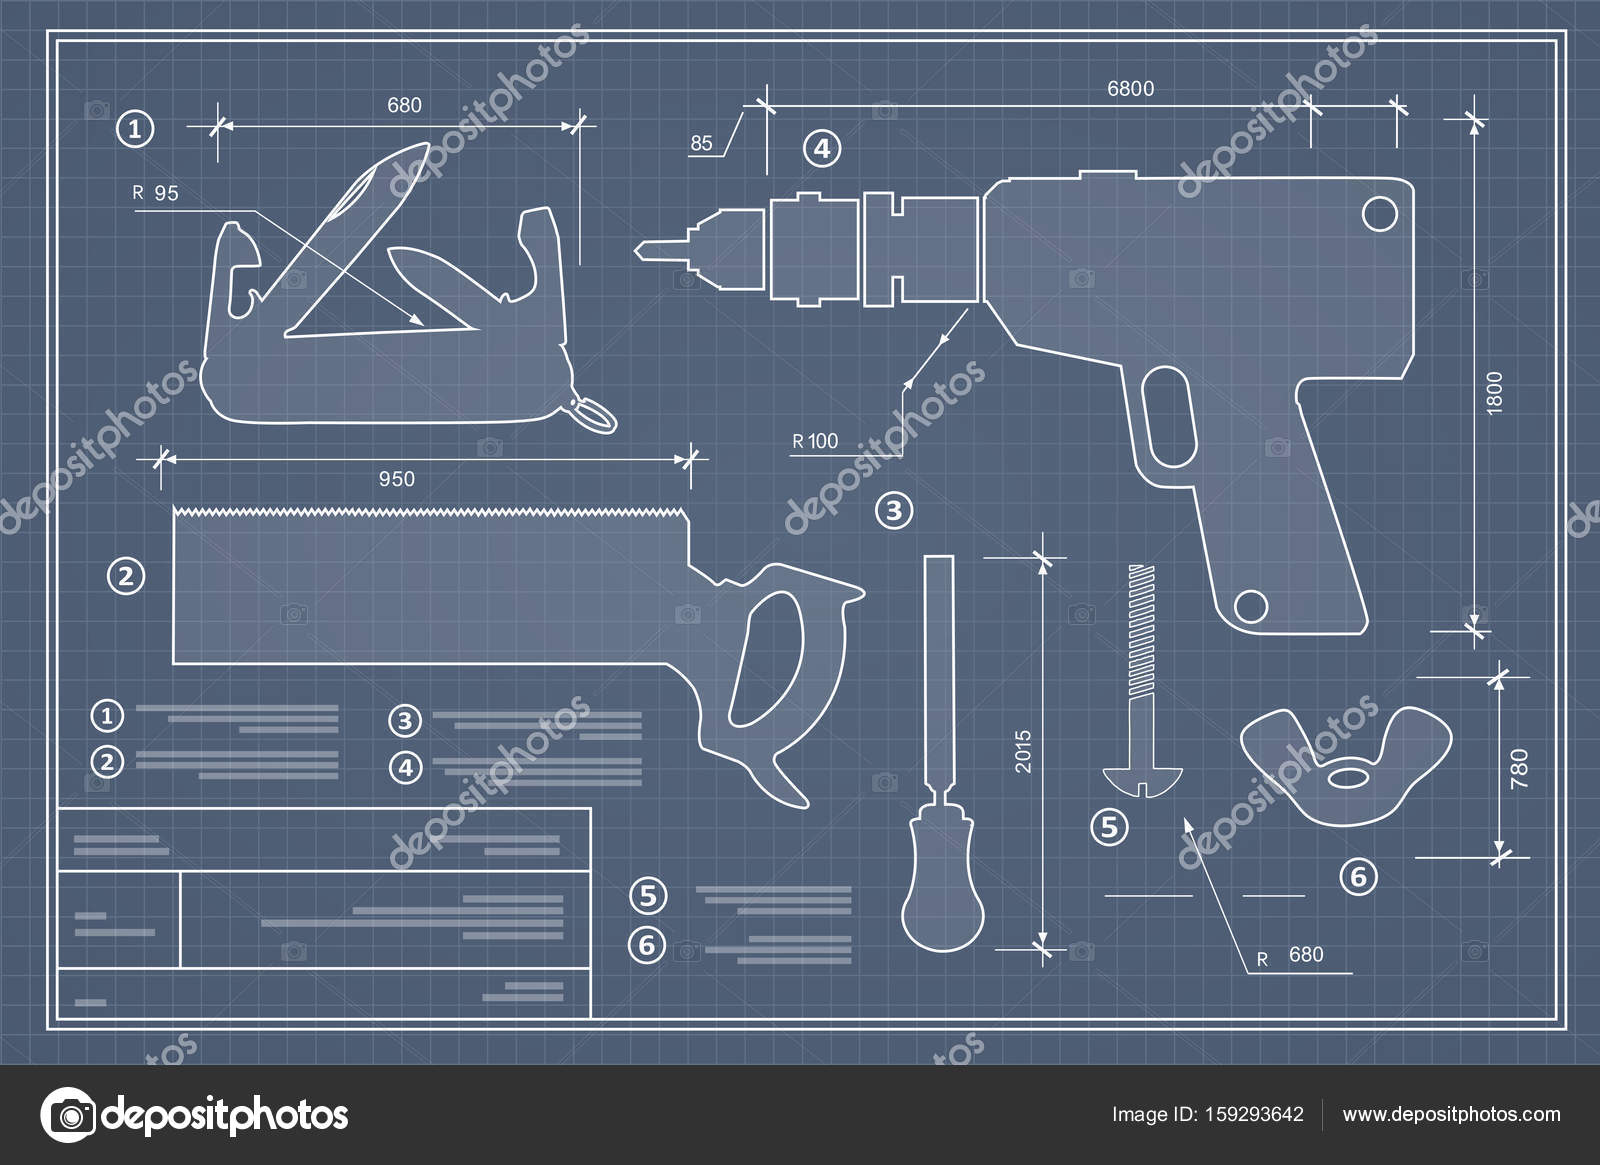 Blueprint building tool stock vector alexzel21 159293642 blueprint building tool set drawing plan layout of industrial and home instrument for construction and repair vector by alexzel21 malvernweather Image collections